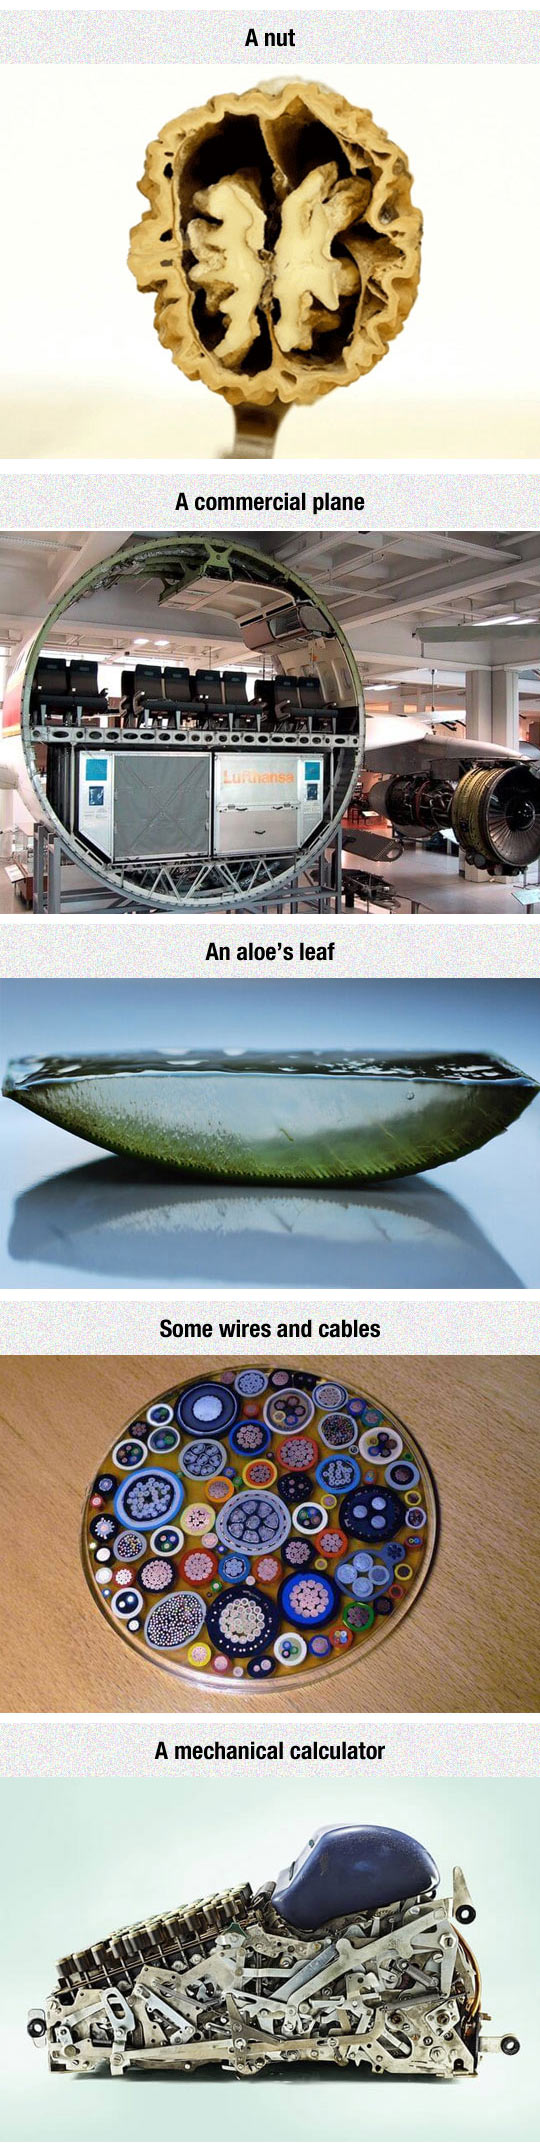 cool-objects-cut-cable-plane